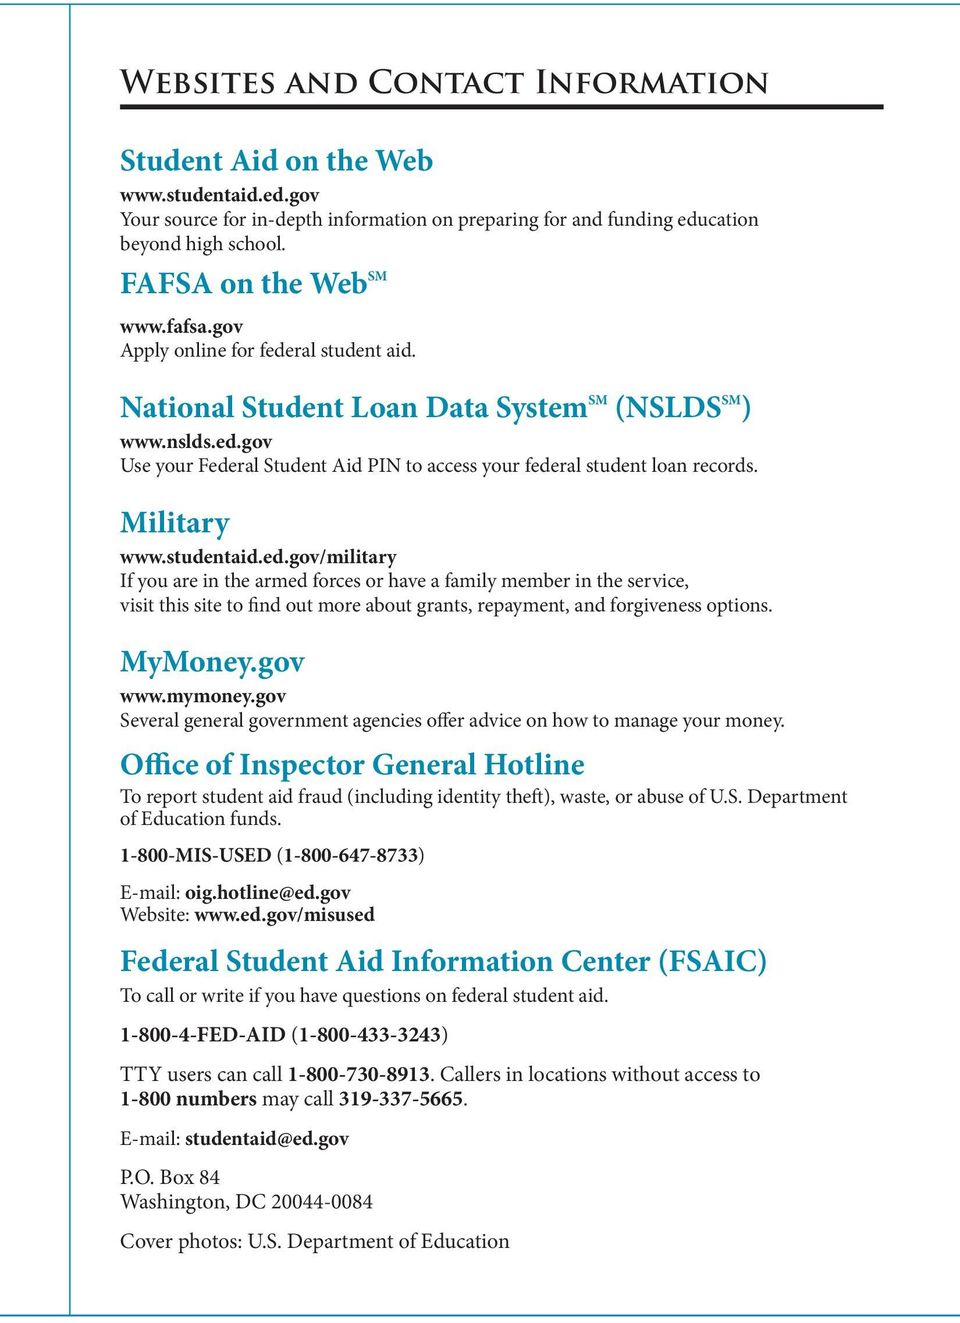 Military www.studentaid.ed.gov/military If you are in the armed forces or have a family member in the service, visit this site to find out more about grants, repayment, and forgiveness options.